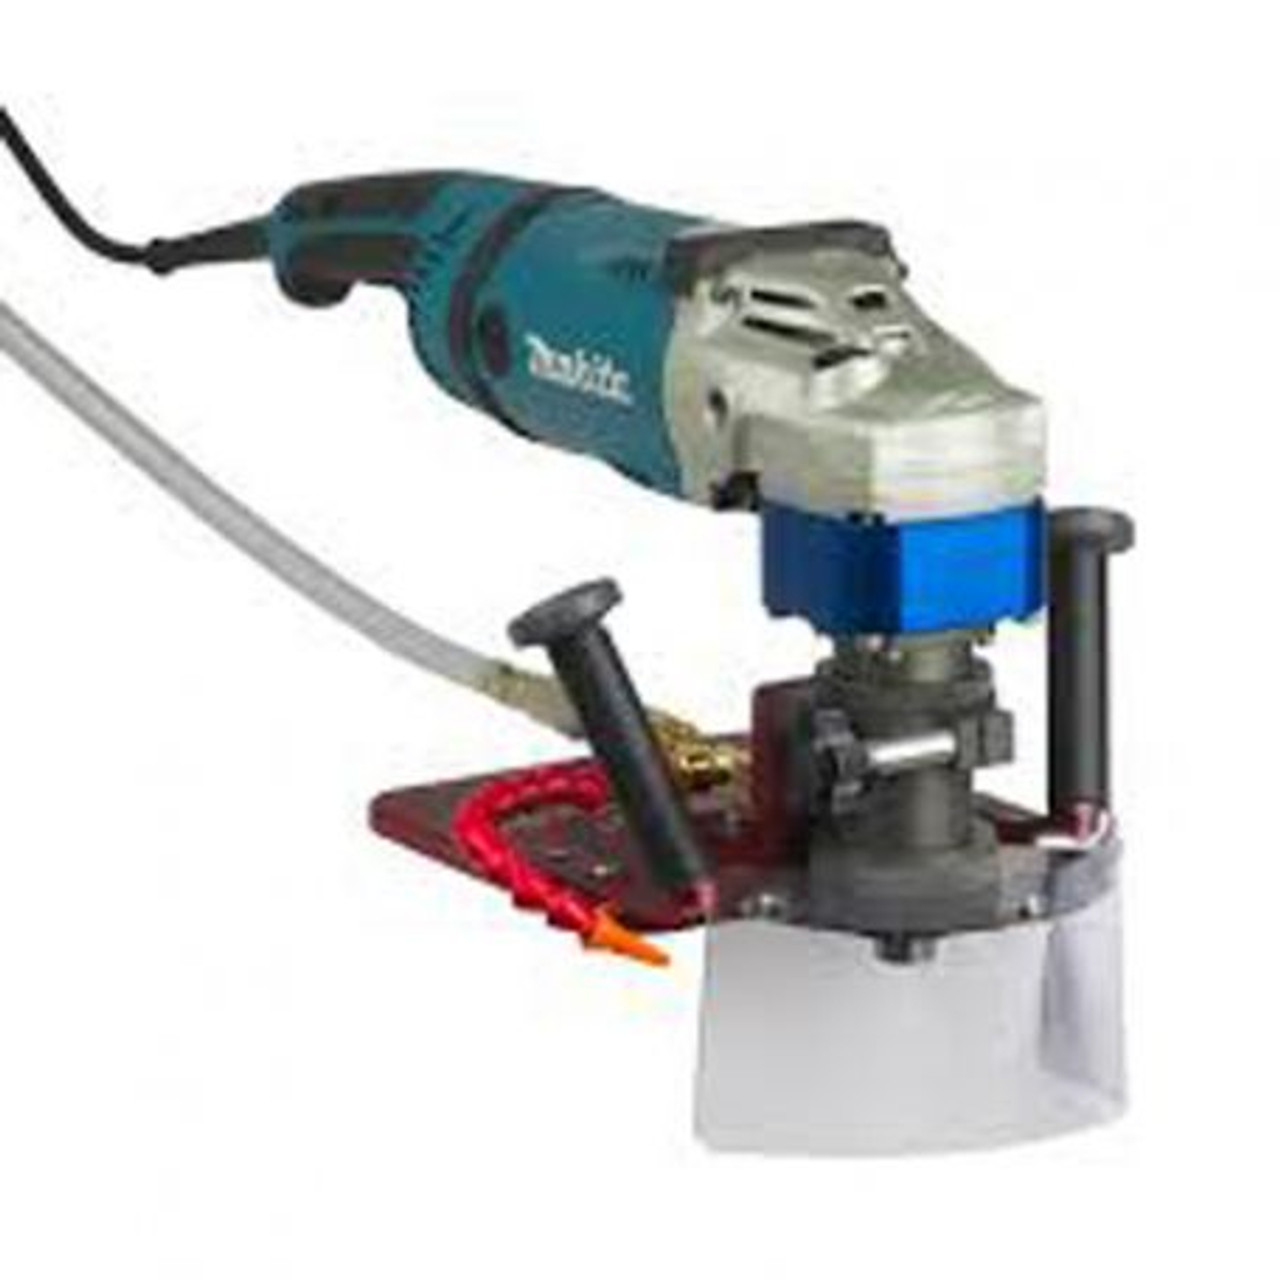 Red Ripper Ultralight Super Stone Router With Makita GA7040S Motor